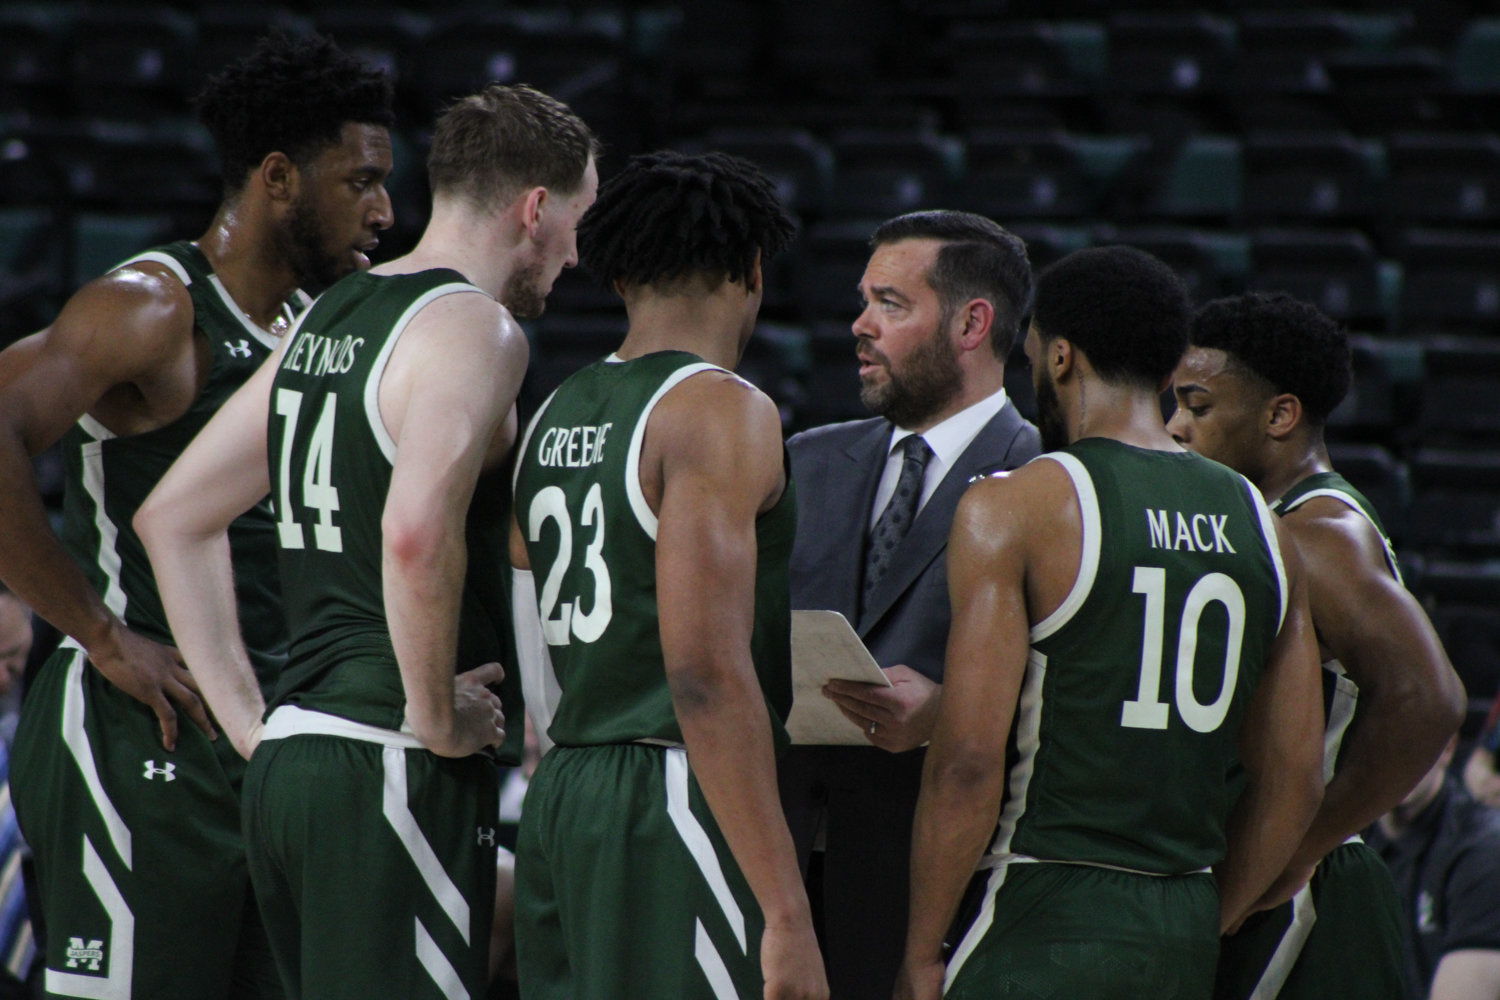 All of Manhattan head coach Steve Masiello's dealings with his players are through phone calls and texts as the coronavirus crisis has made normal dealings with his team impossible.